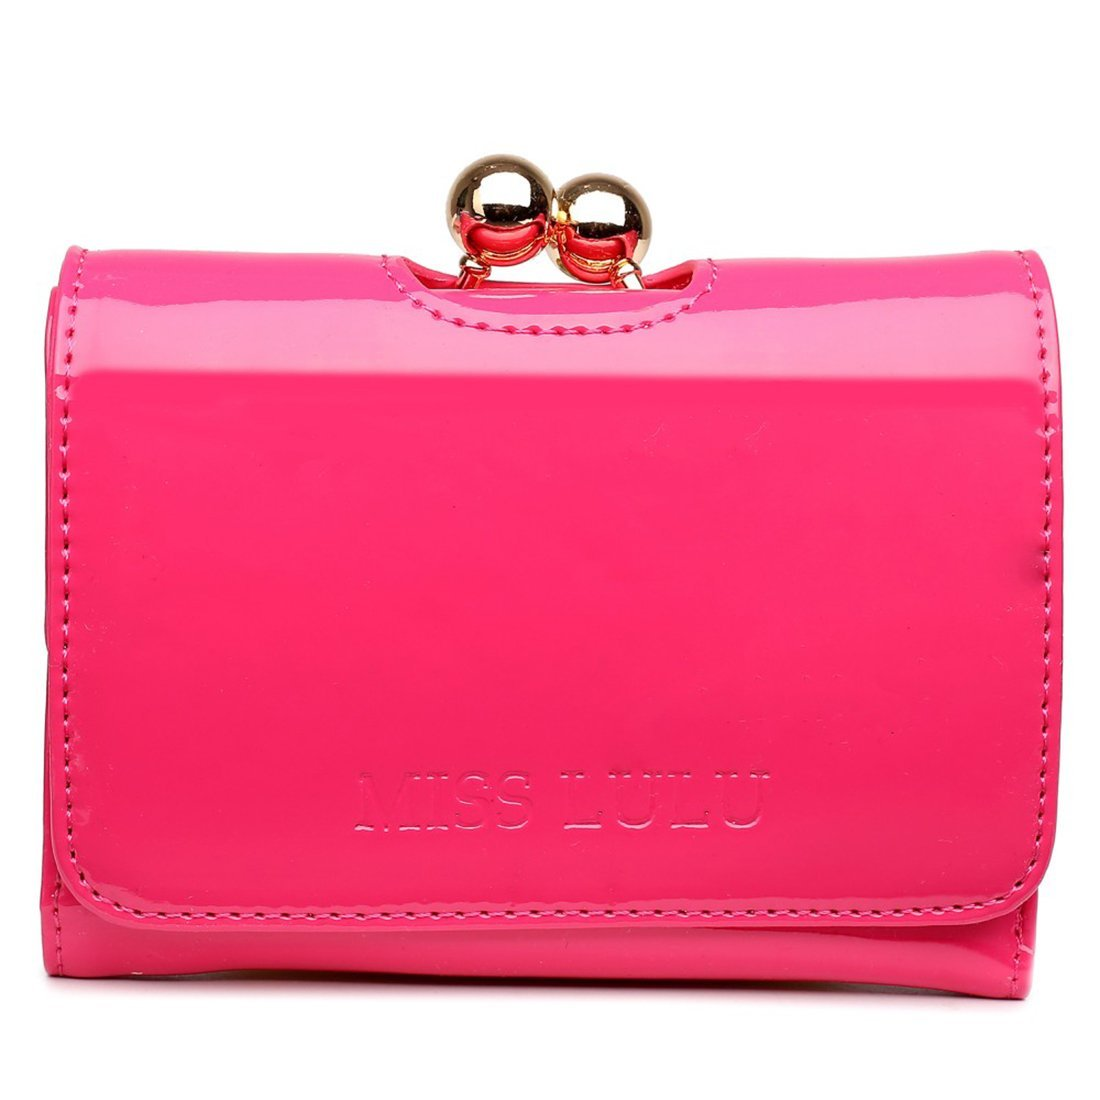 Miss Lulu Small Ball Clasp PU Patent Leather Clutch Wallet Purse